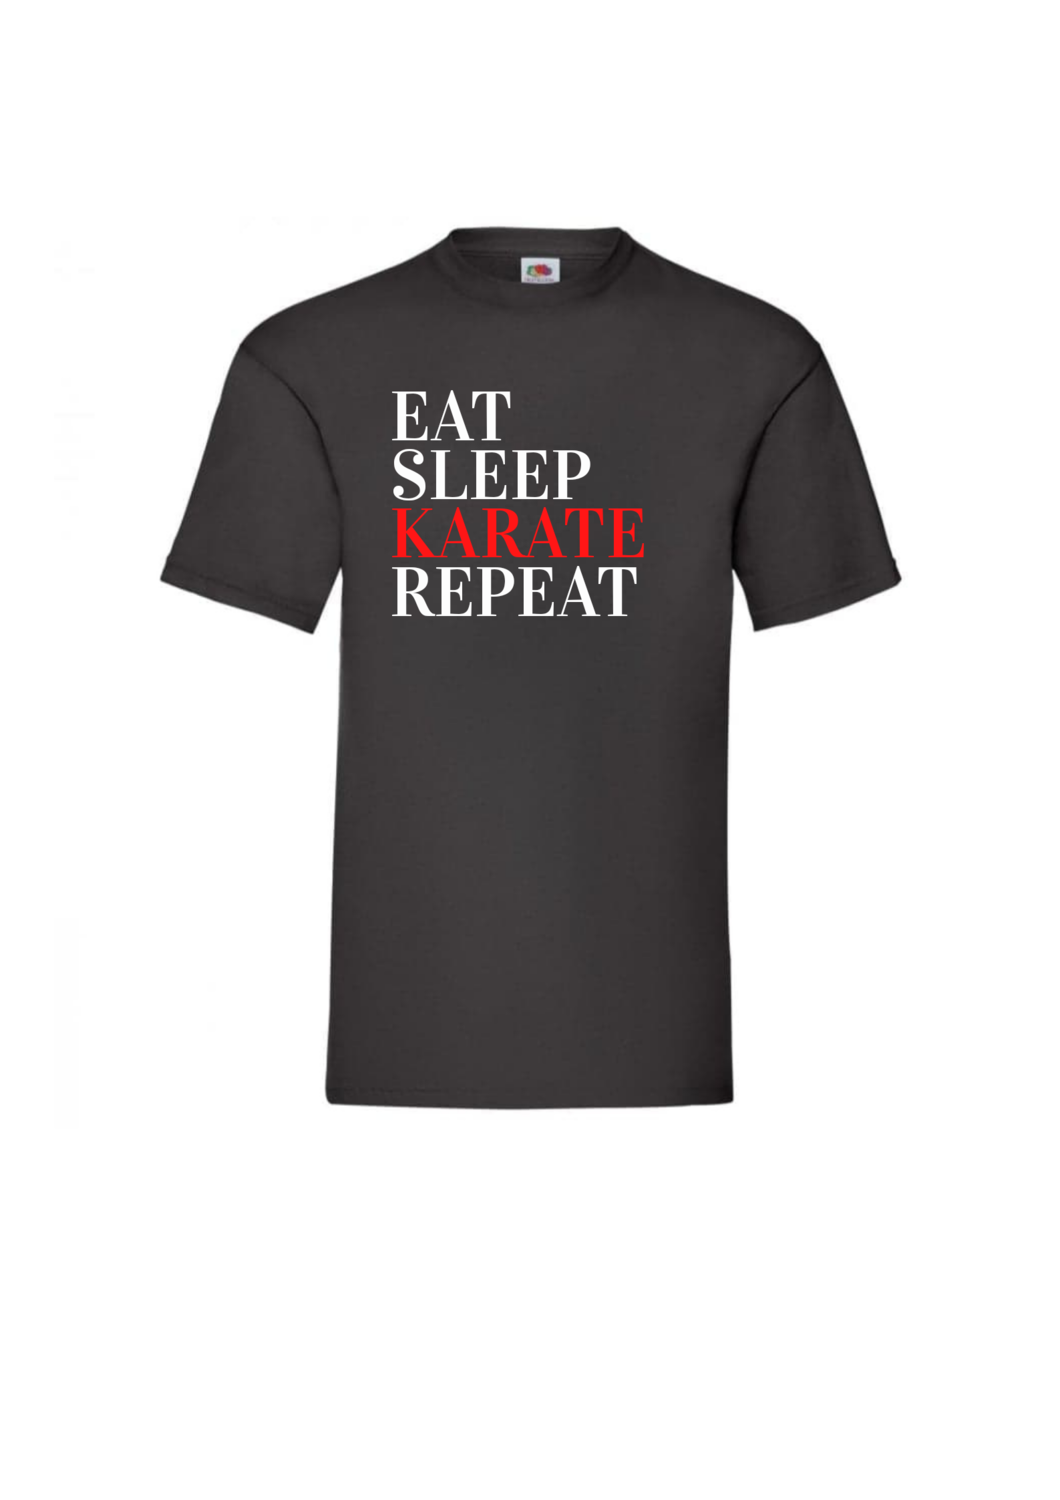 Eat Sleep Karate Repeat Tshirt